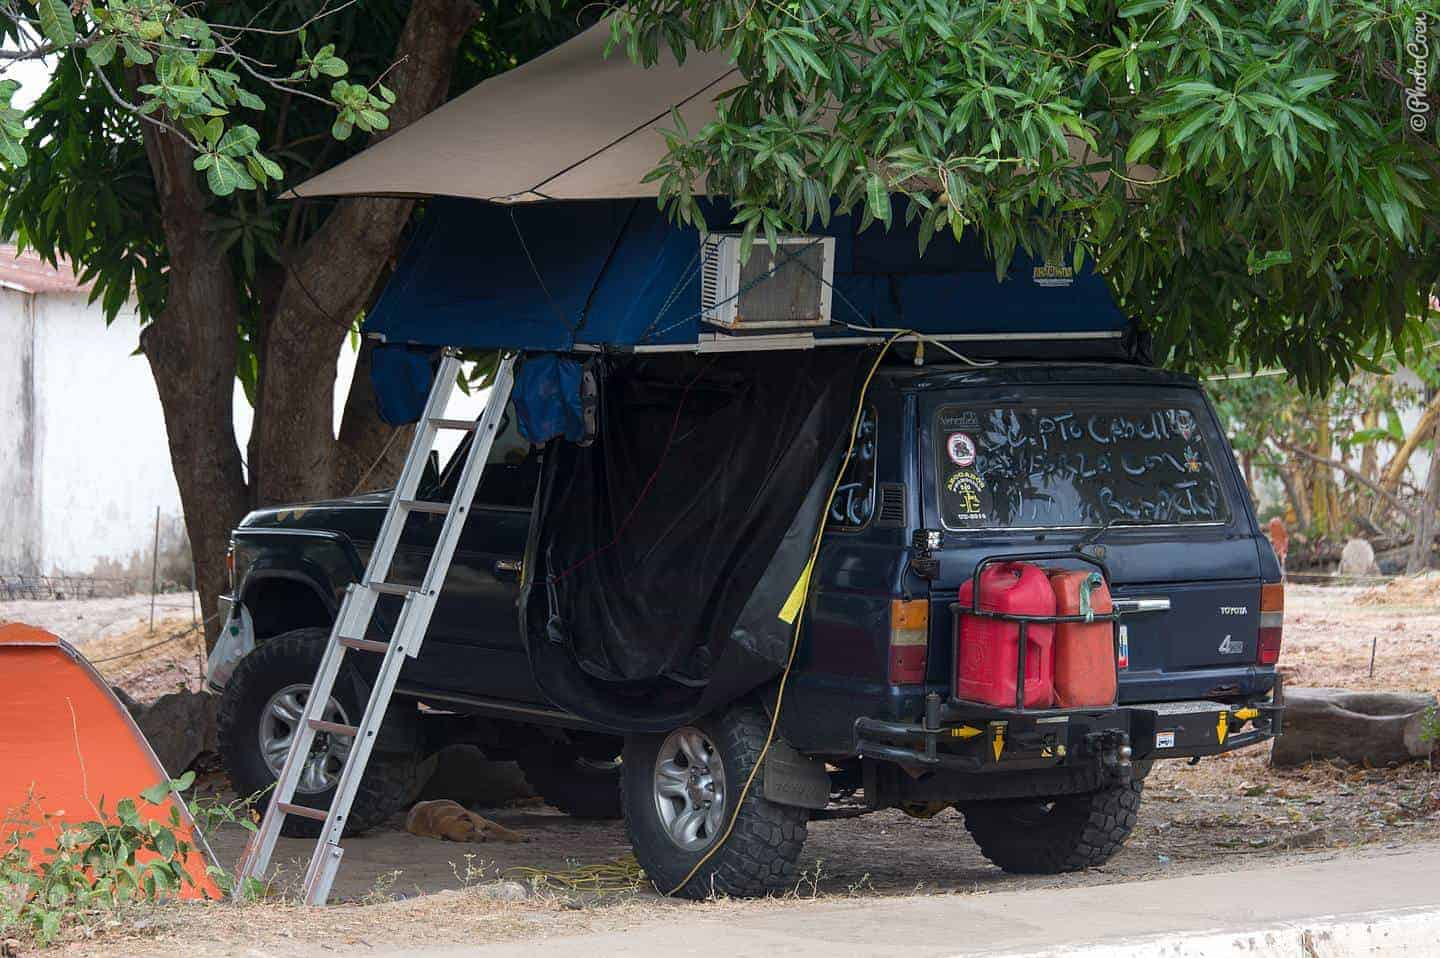 Venezuelans like an aircon in their tent (gasoline is free in this country) & Why Traveling with a Rooftop Tent? And Which One? (part 1 ...